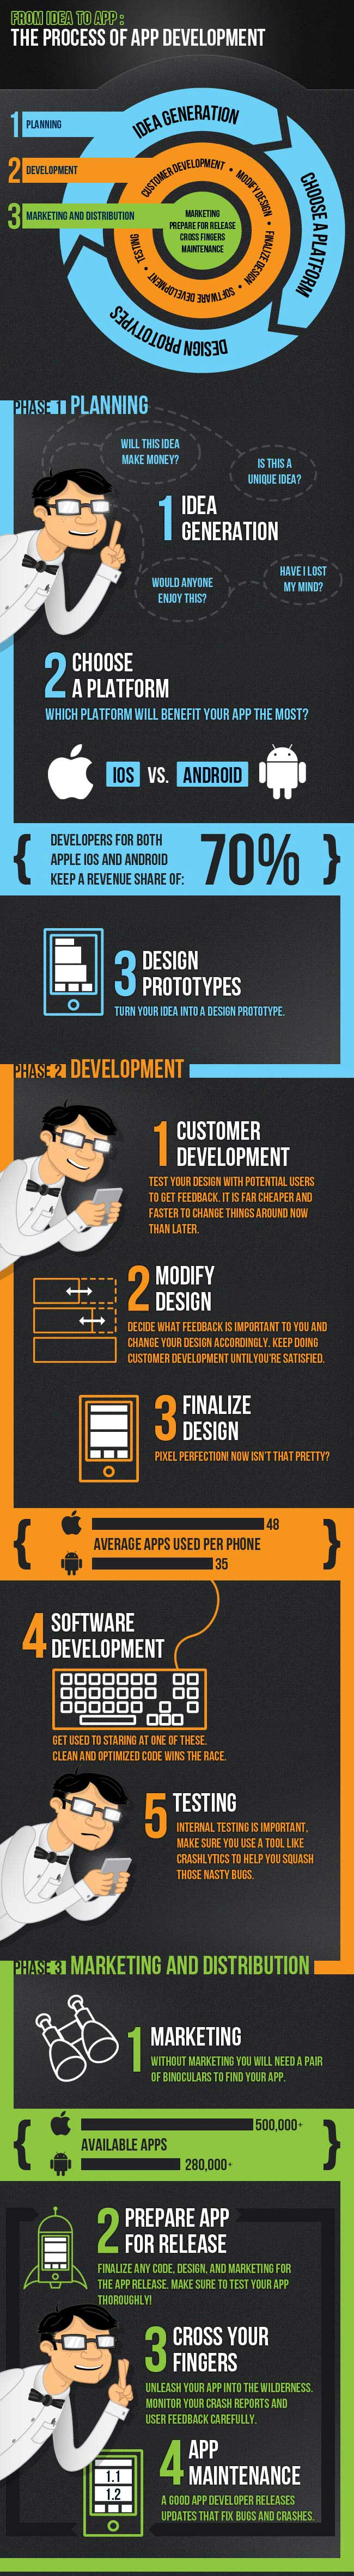 The-Process-and-steps-of-App-Development